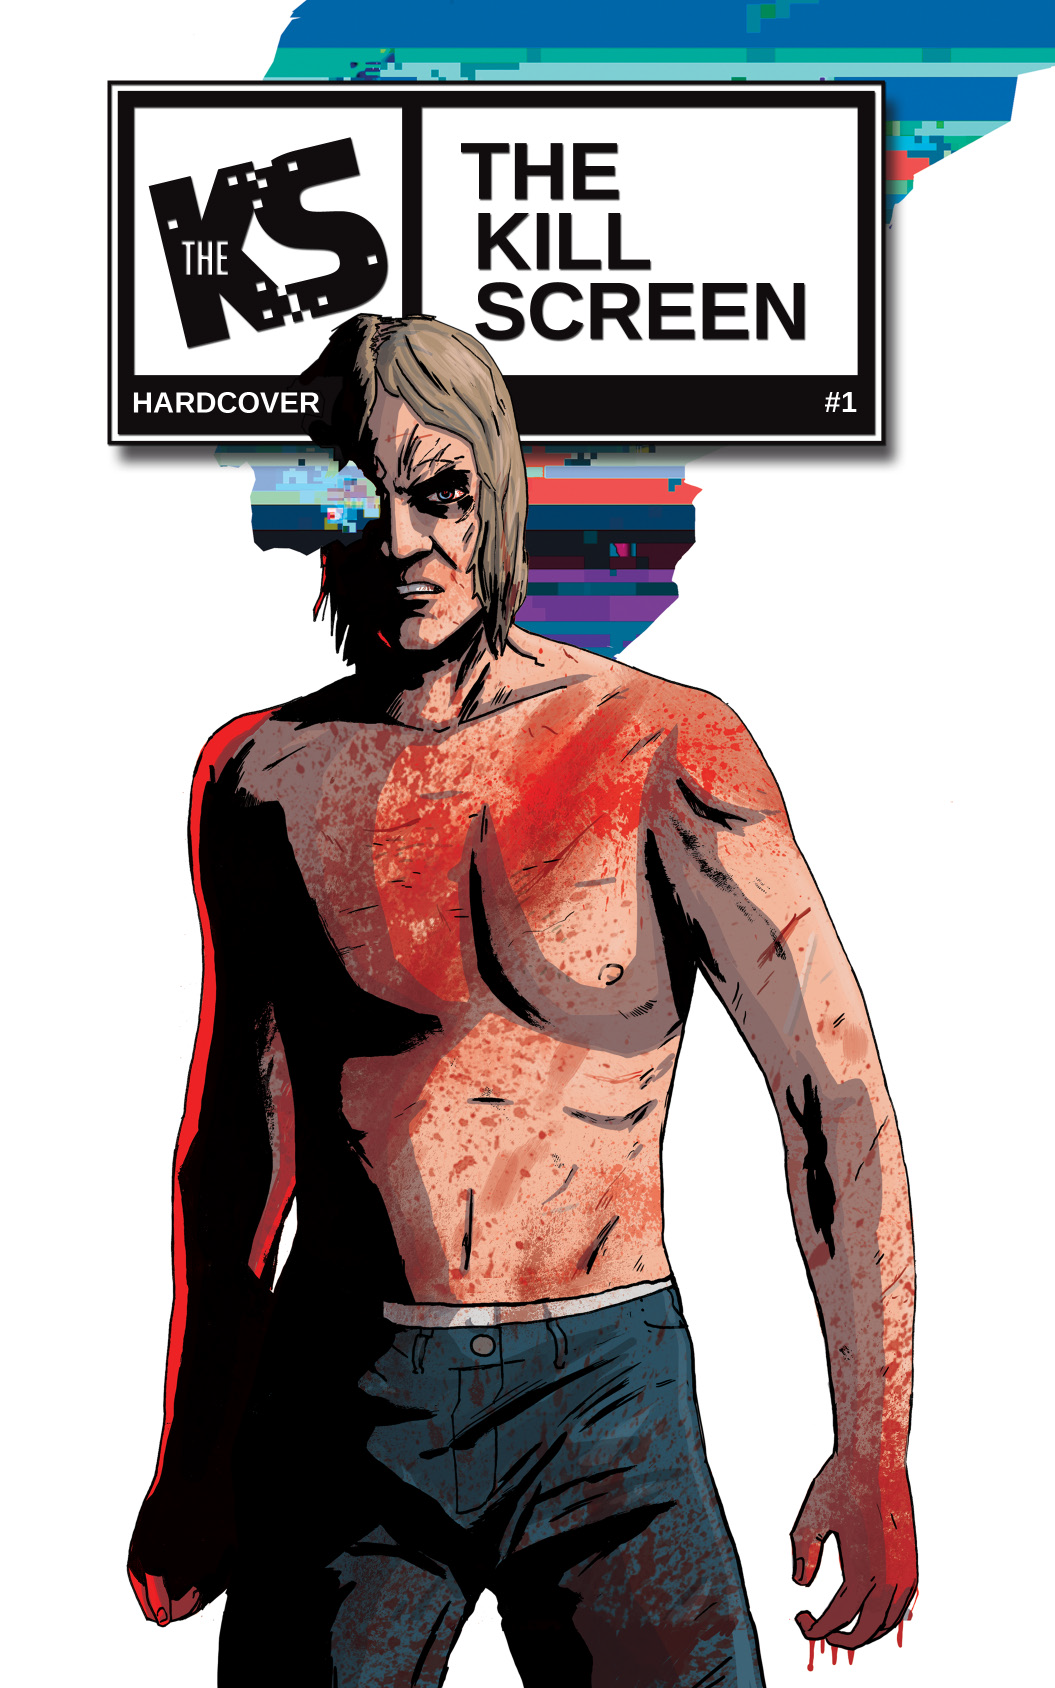 The Kill Screen hardcover cover